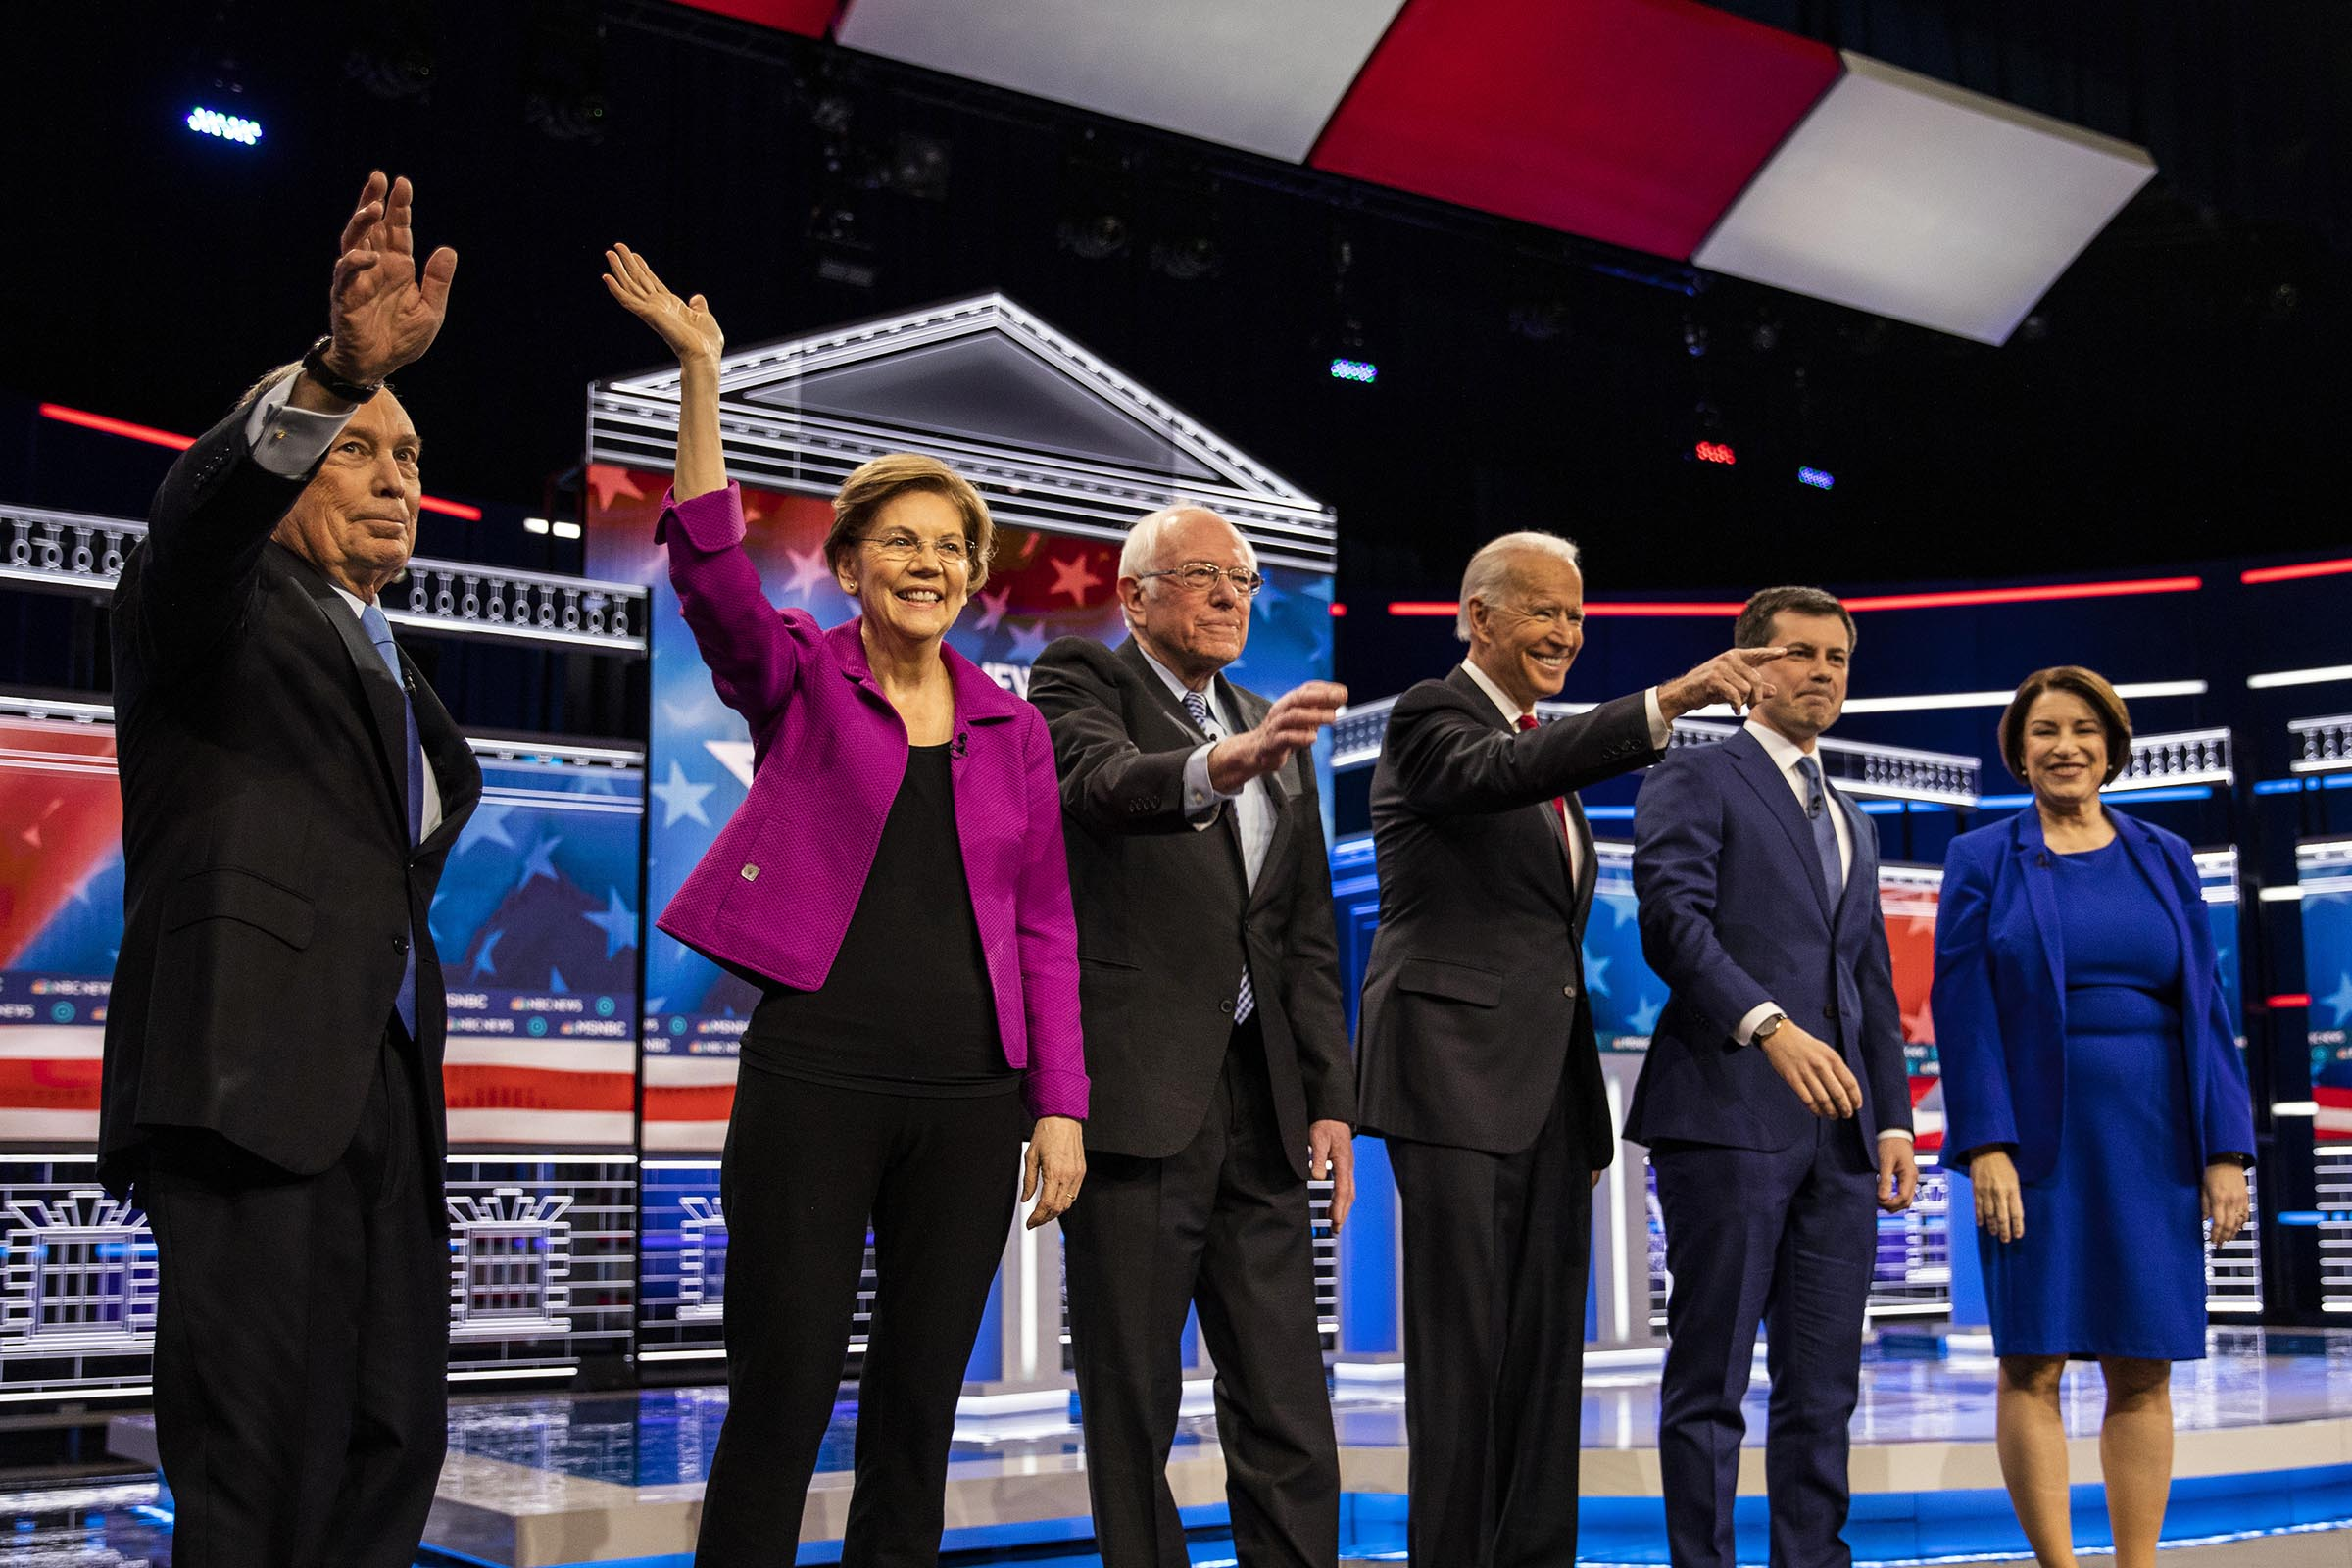 (L-R) Democratic presidential hopefuls Former New York Mayor Mike Bloomberg, Massachusetts Senator Elizabeth Warren, Vermont Senator Bernie Sanders, Former Vice President Joe Biden, Former mayor of South Bend, Indiana, Pete Buttigieg and Indiana Senator Amy Klobuchar arrive on stage for the ninth Democratic primary debate of the 2020 presidential campaign season in Las Vegas on Feb. 19, 2020.